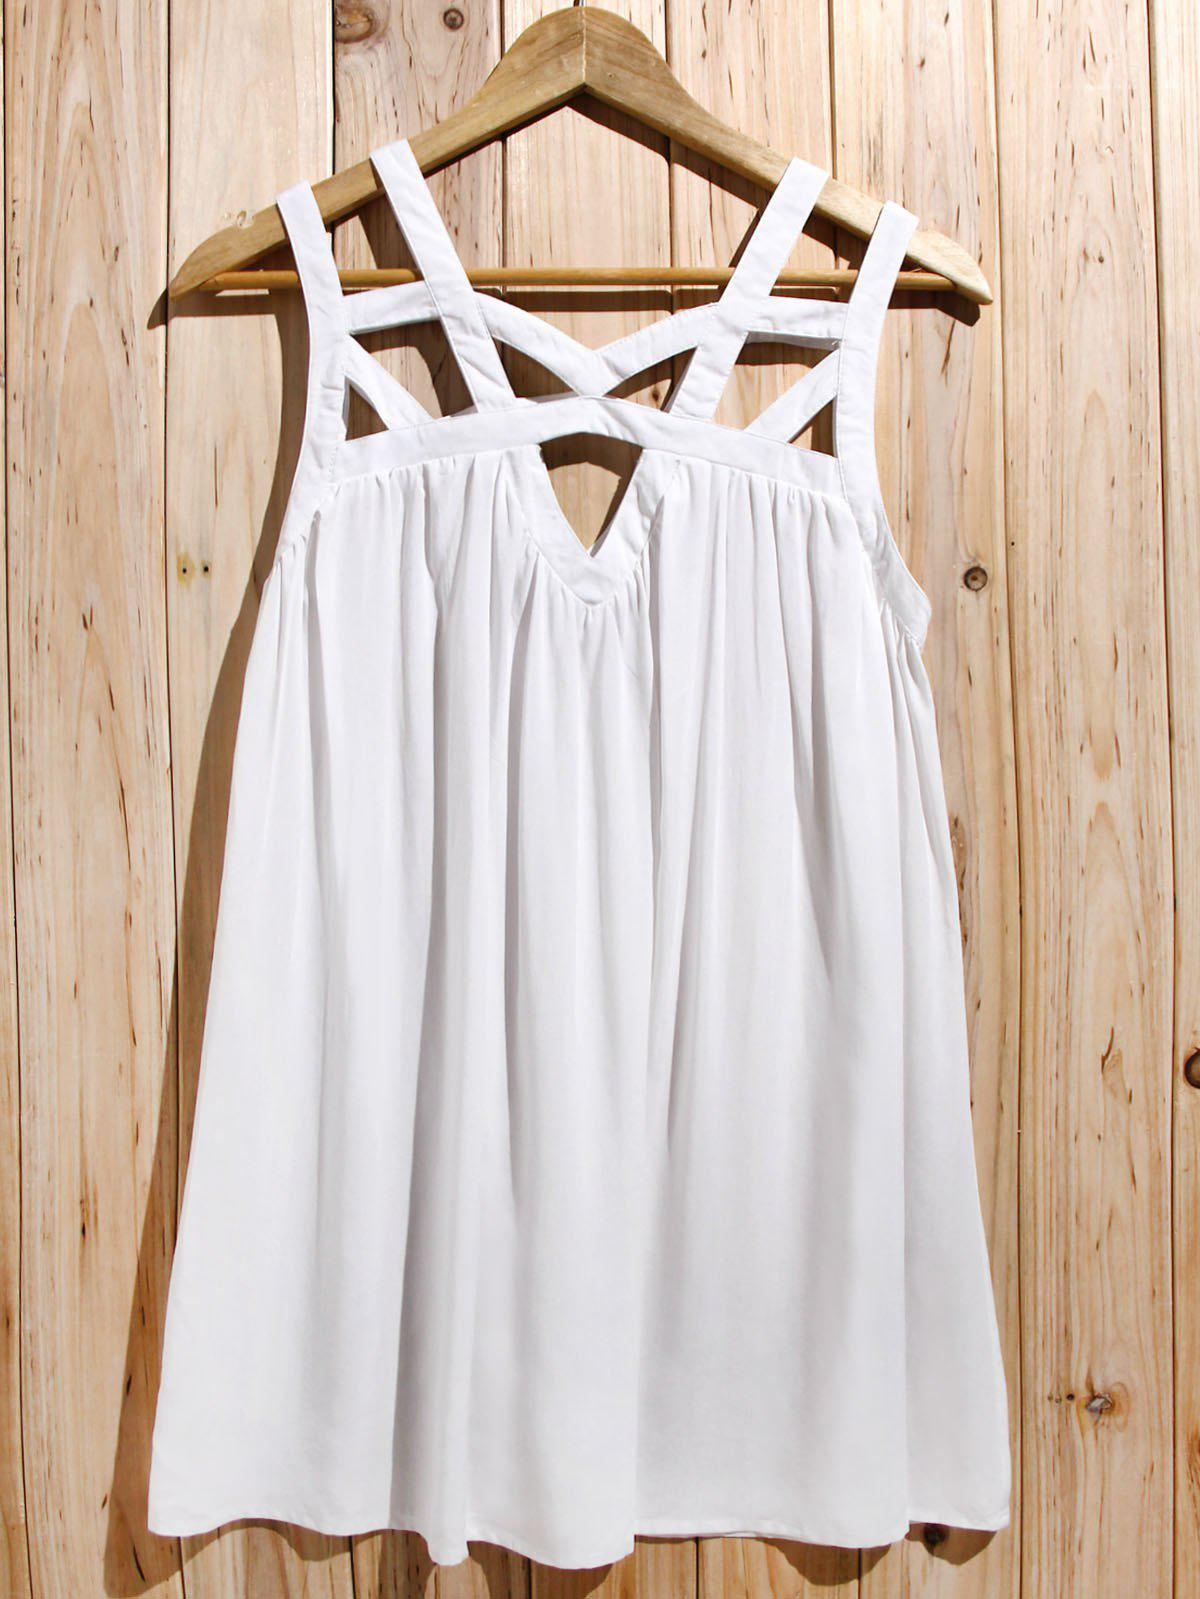 Endearing White Cut Out Sleeveless Pleated Mini Dress For Women - WHITE S